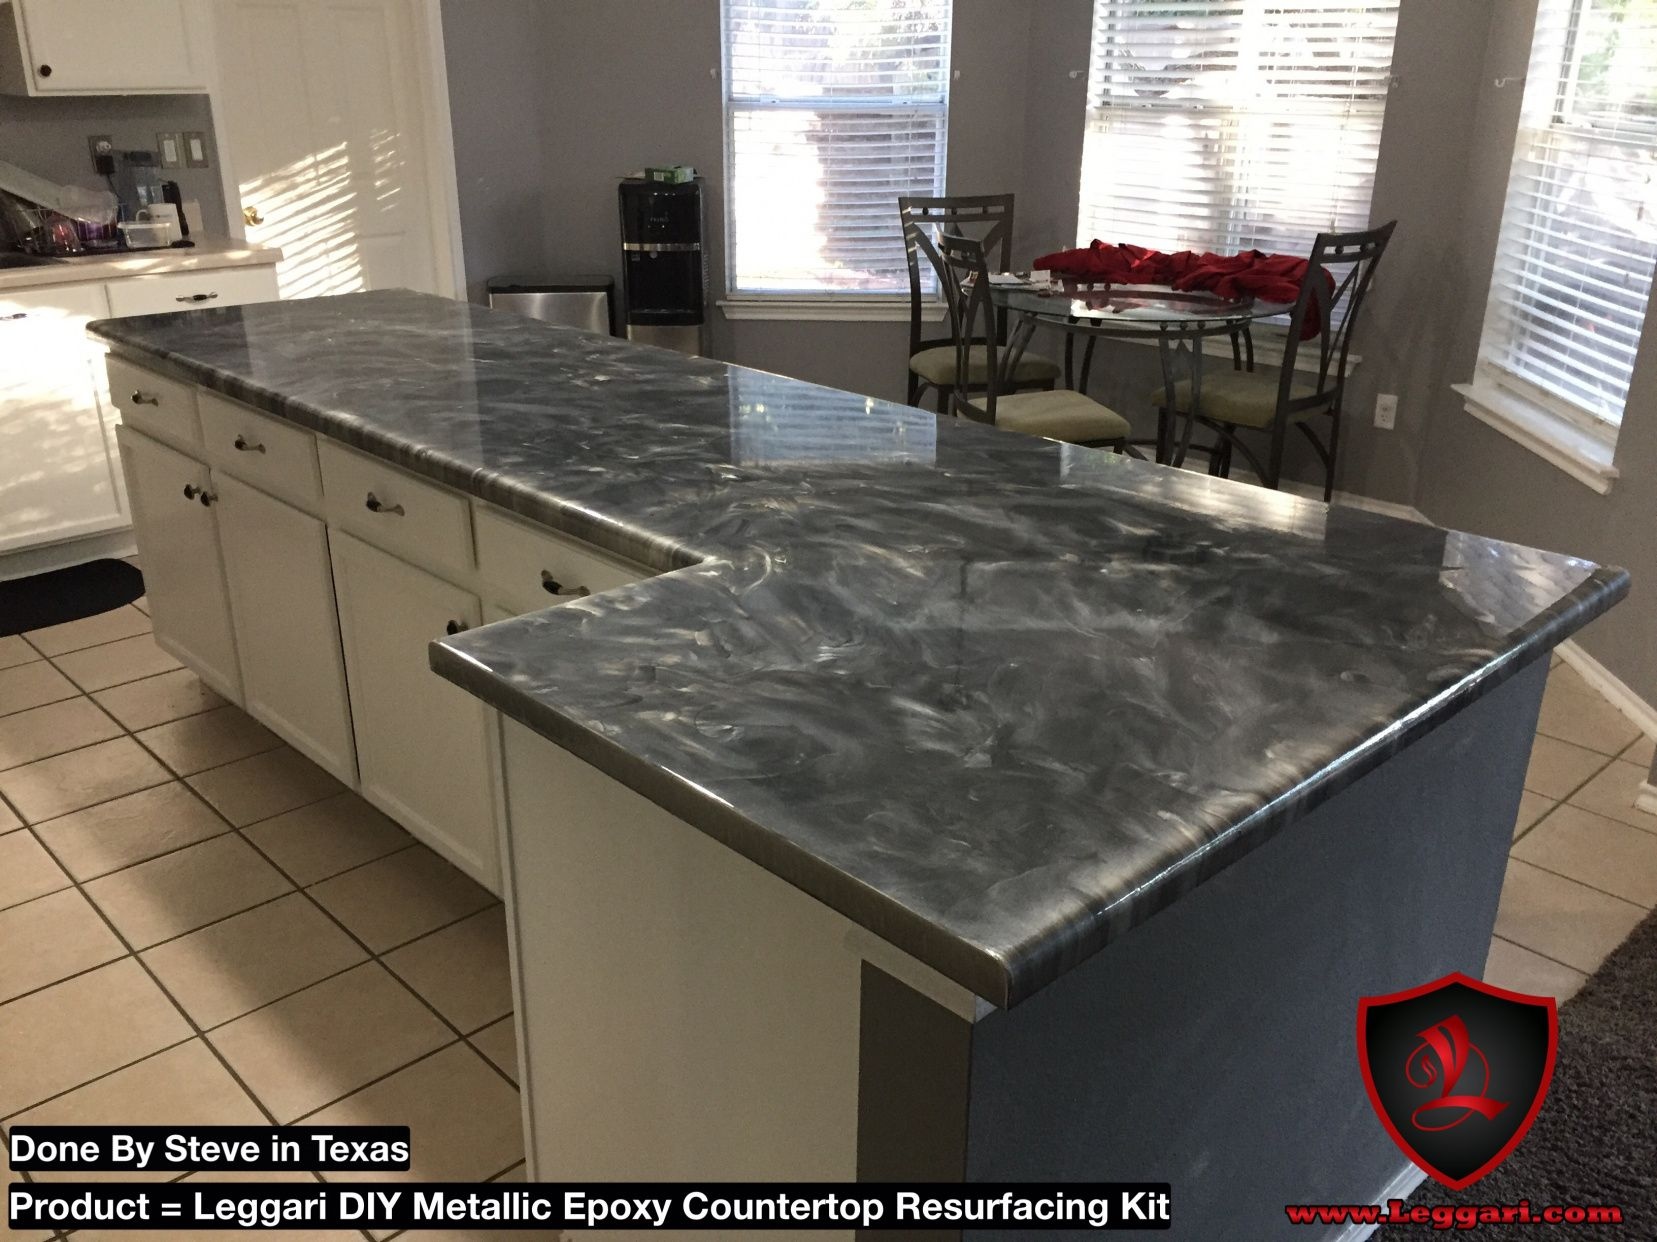 50 How To Glue Granite Countertops Together Kitchen Nook